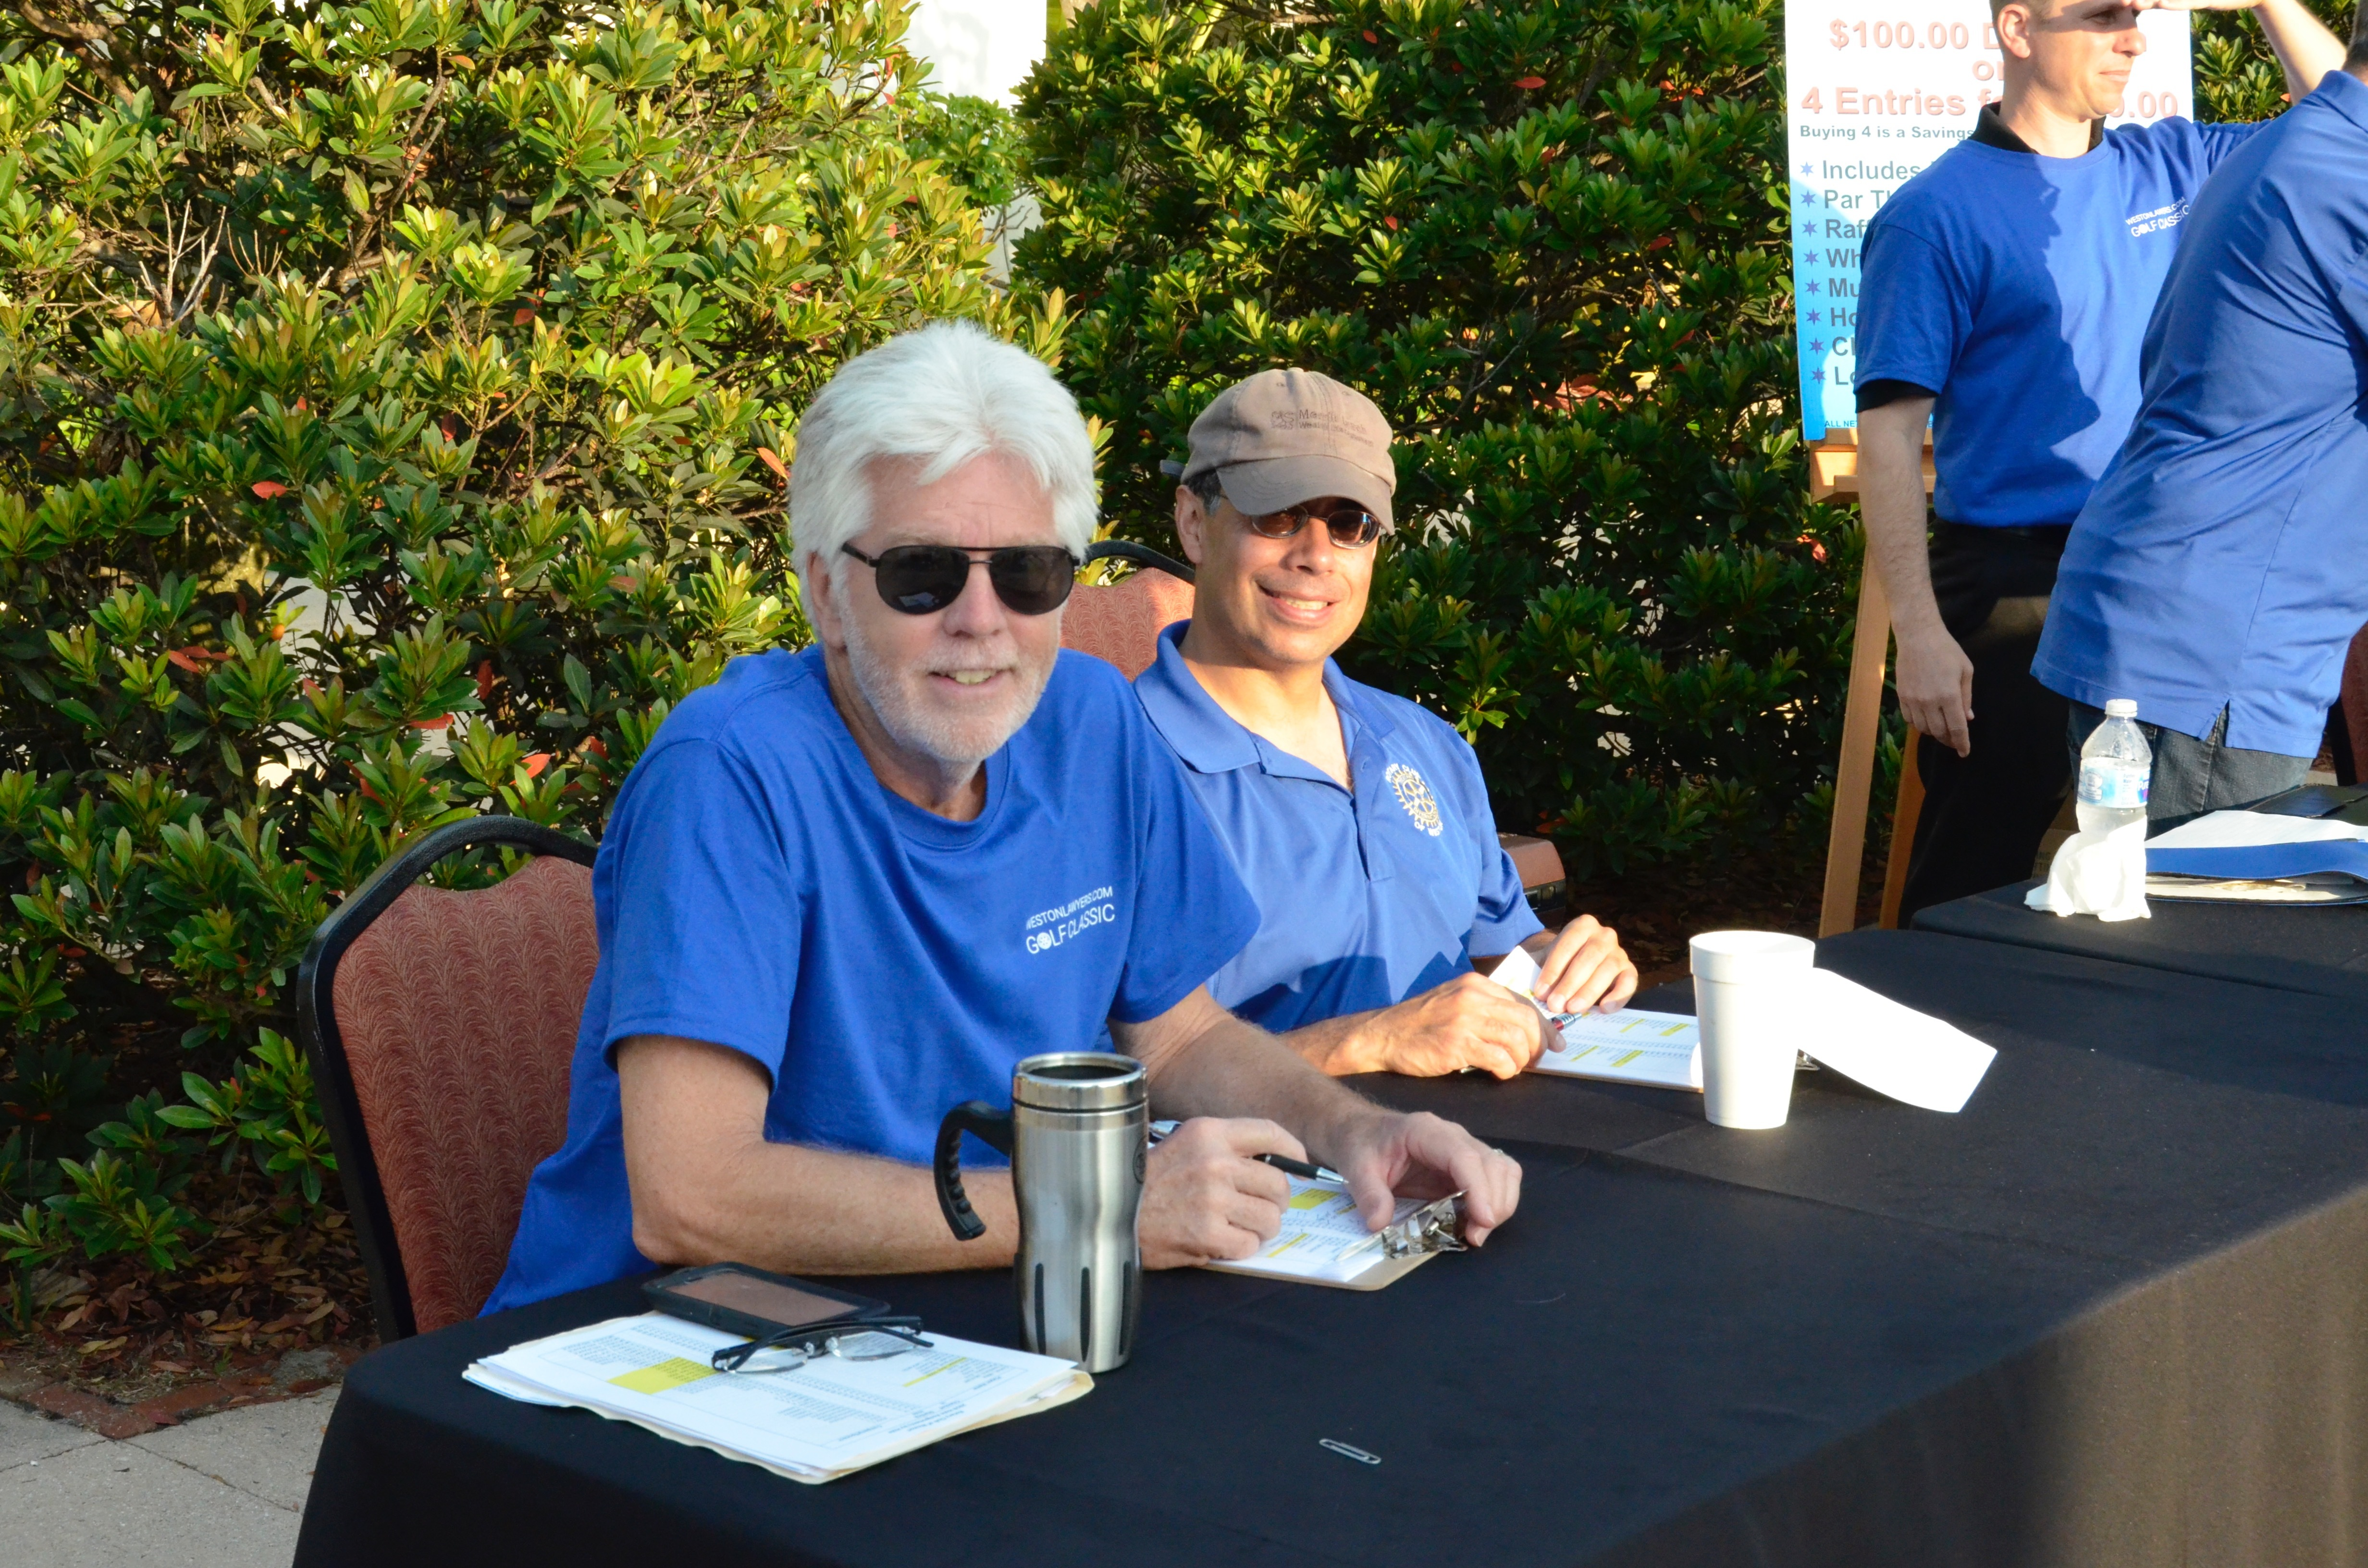 33rd Annual Rotary Golf Classic Sponsored by FHVLEGAL.COM gallery image #97